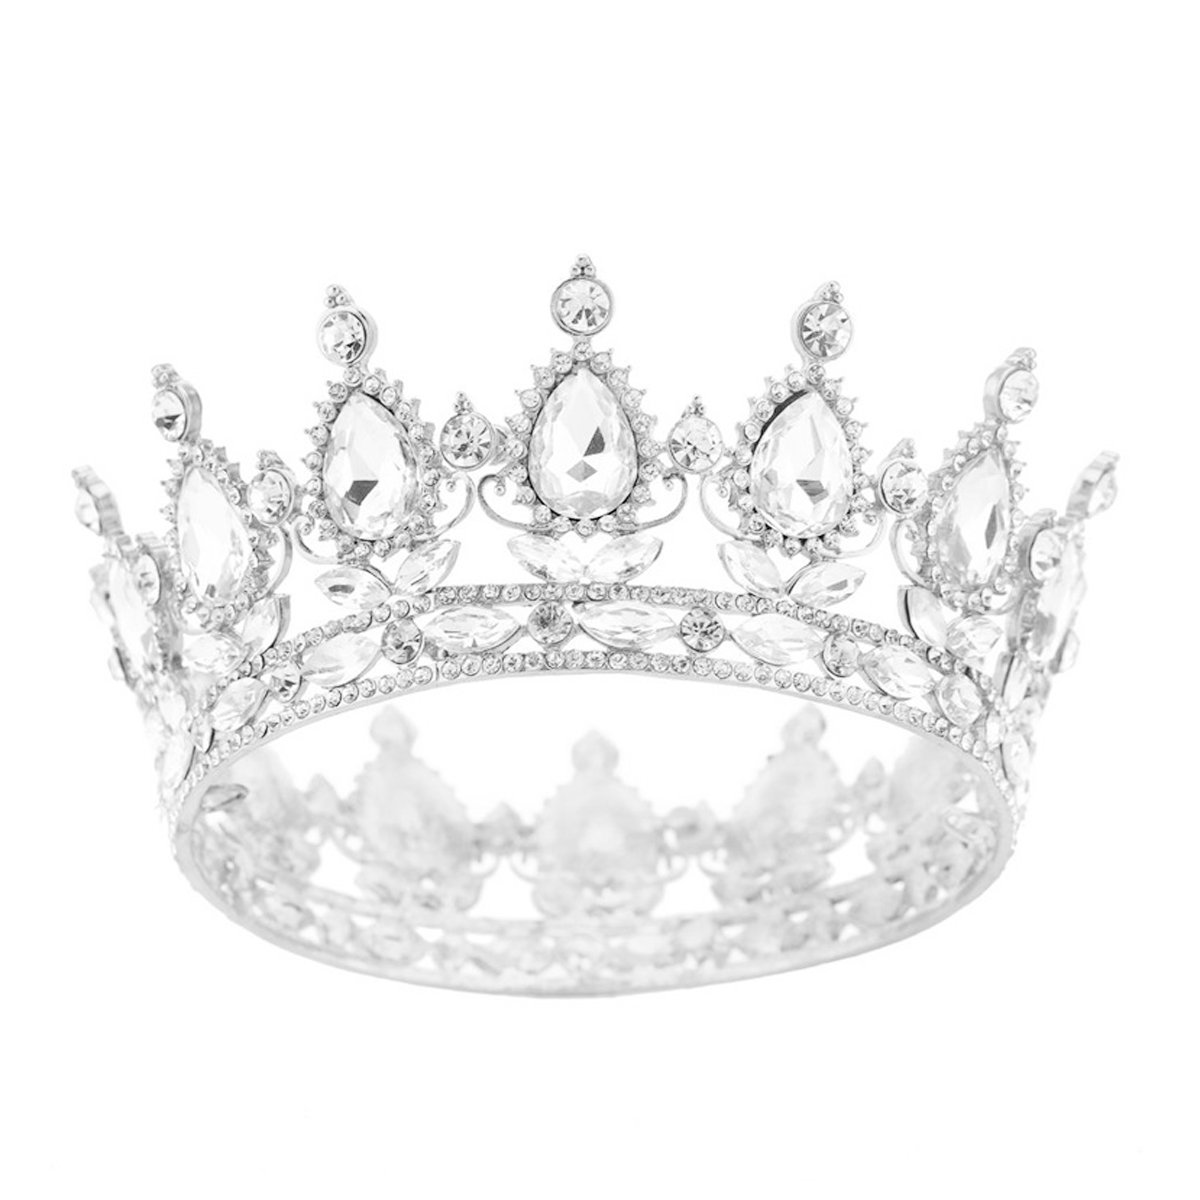 SSNUOY Silver Diamond Shape Tiaras for Brides Pageant Queen Crowns Prom Wedding Headband